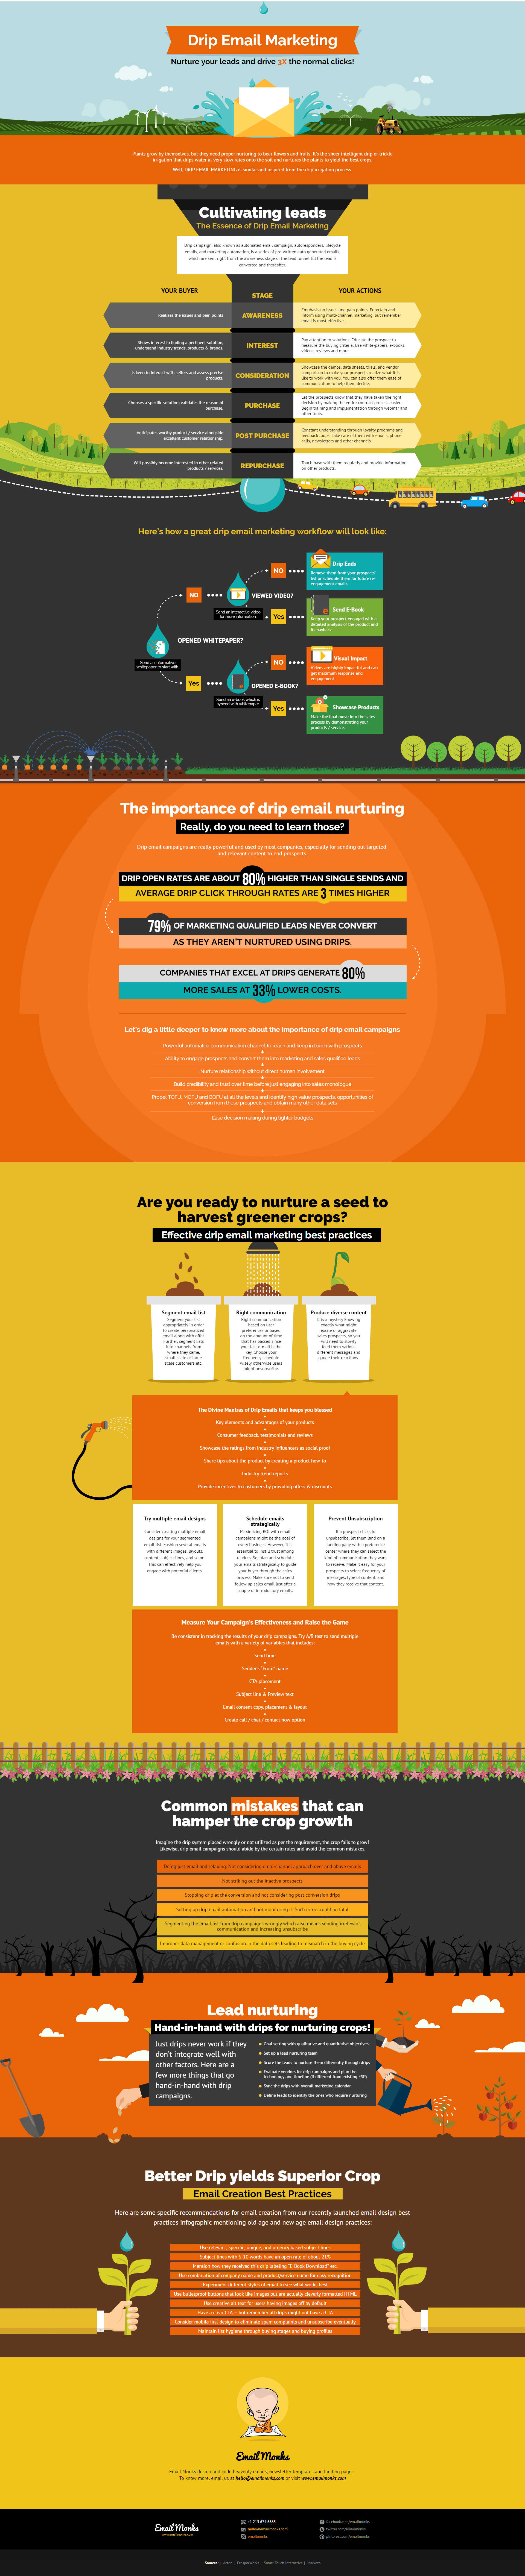 DRIP Campaigns Infographic